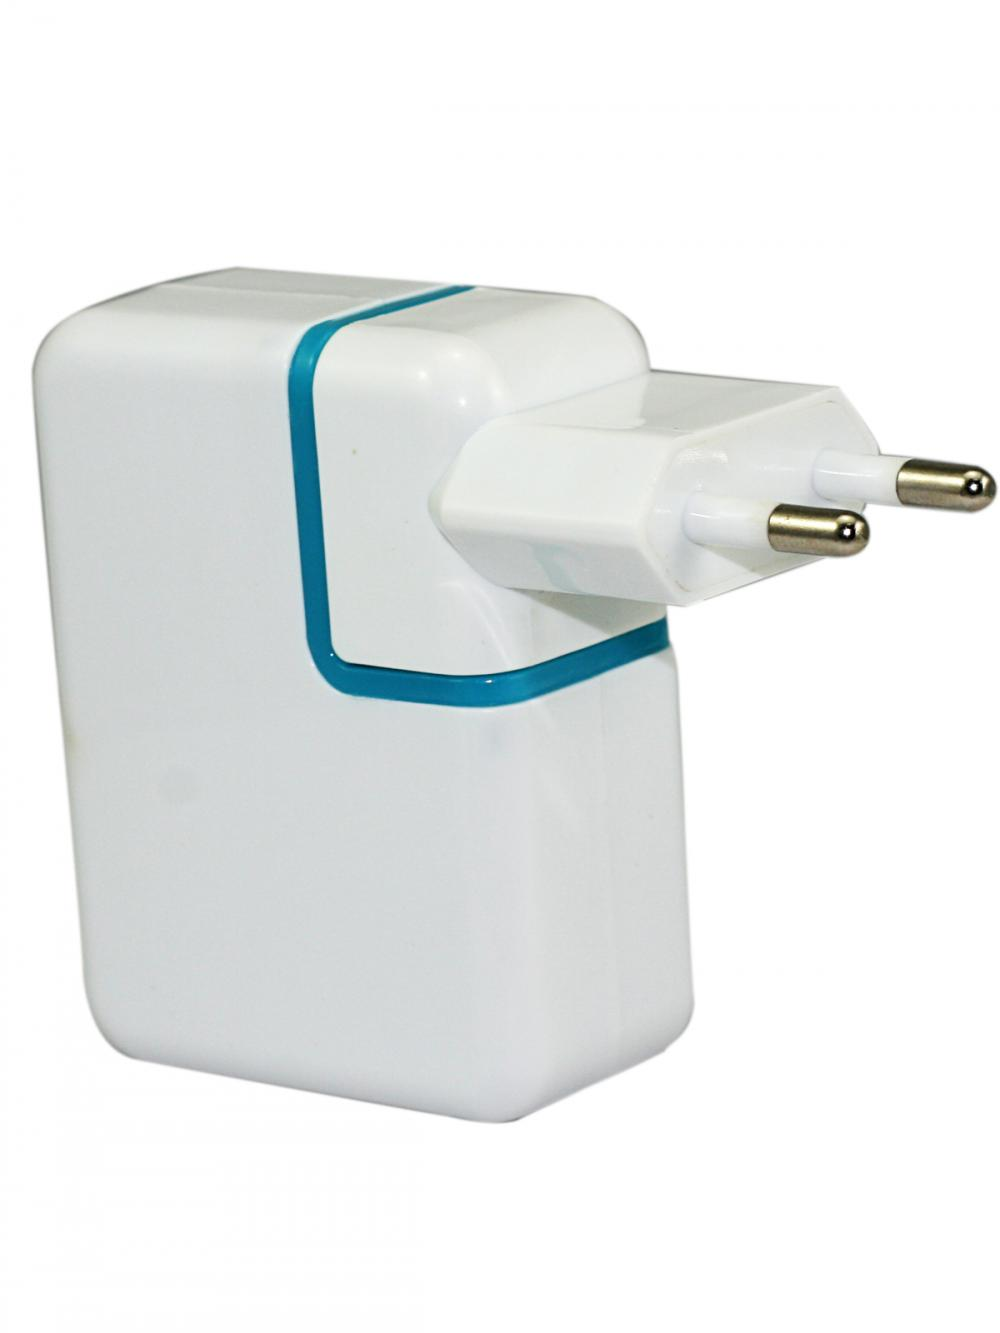 USB charger with covertible plug